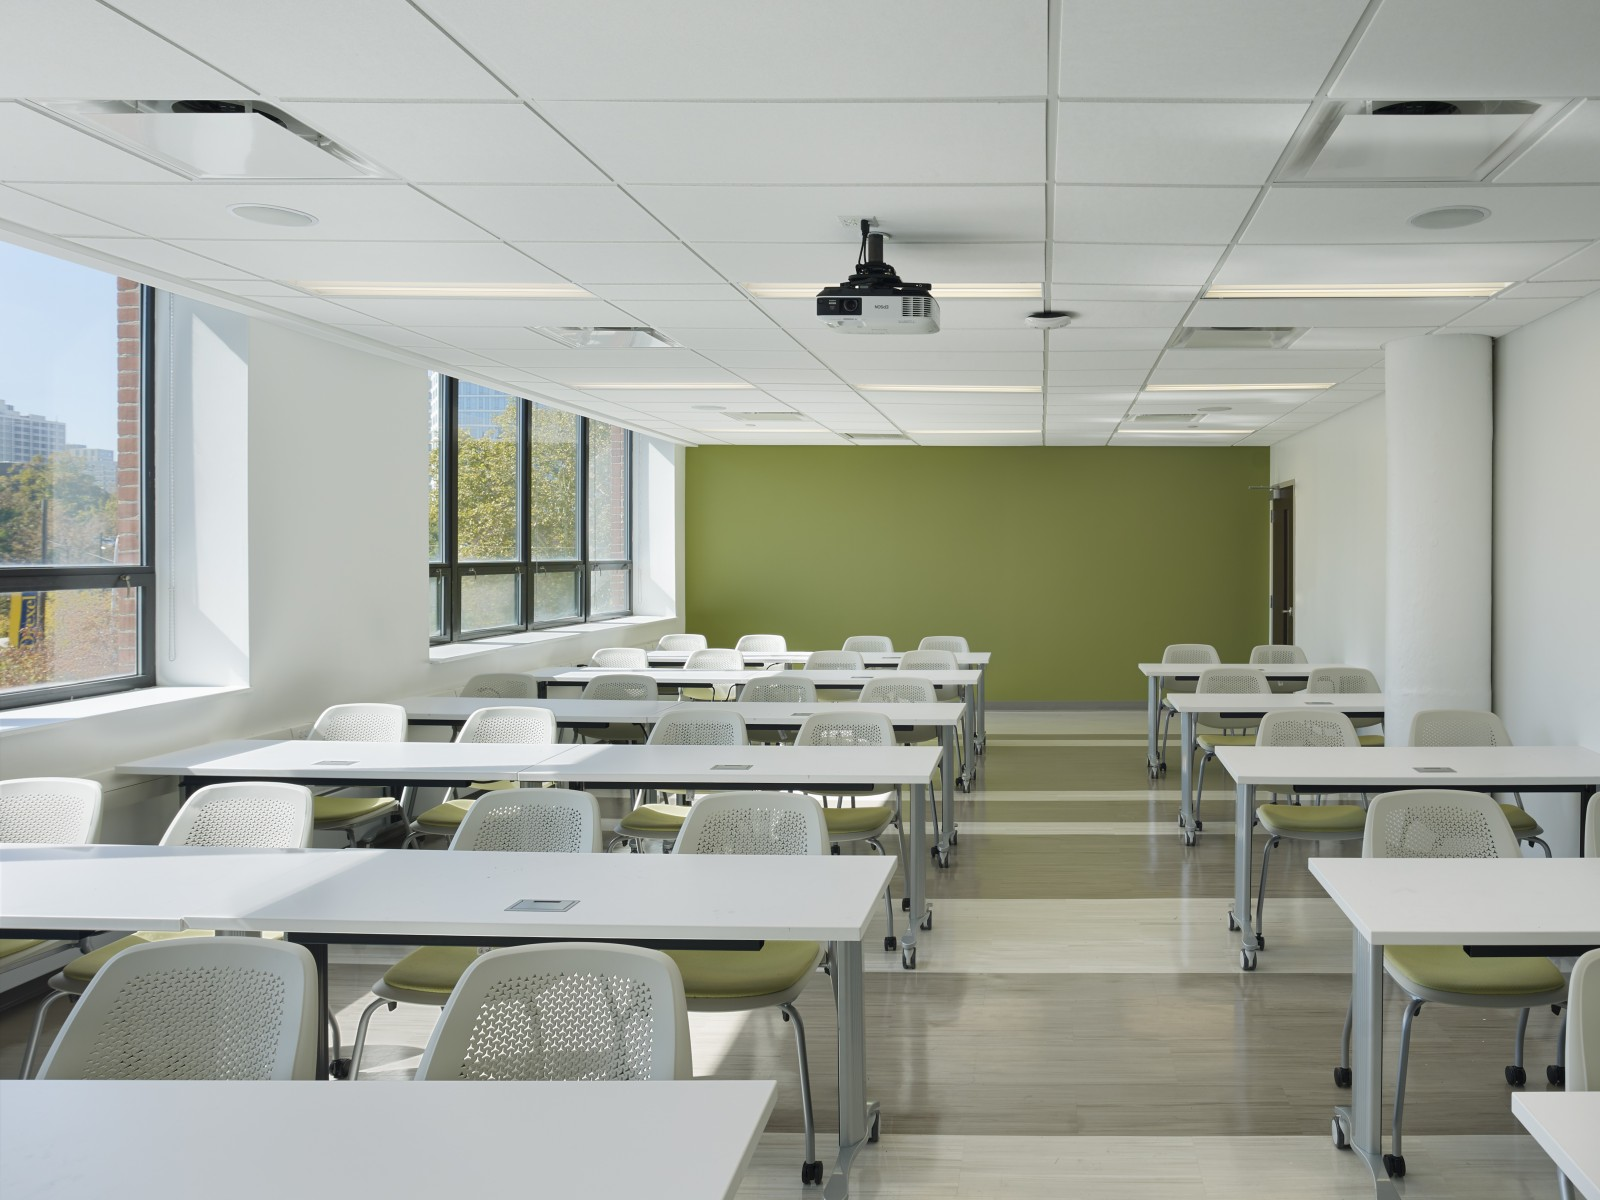 Fit-out of 2nd floor classroom at Drexel PPPSRB